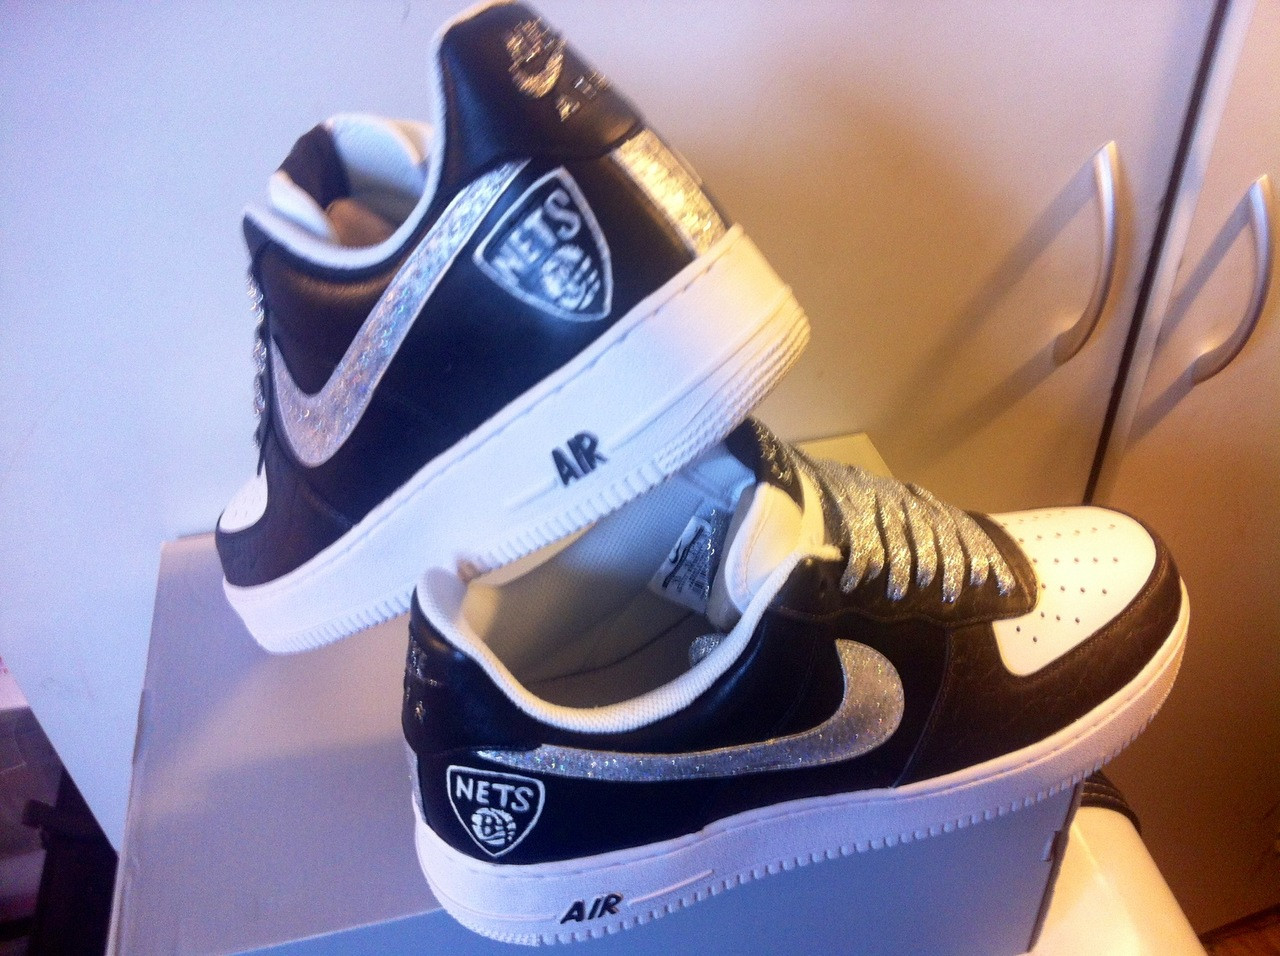 Brooklyn Nets Custom Remixdakicks Airforce One Sneakers